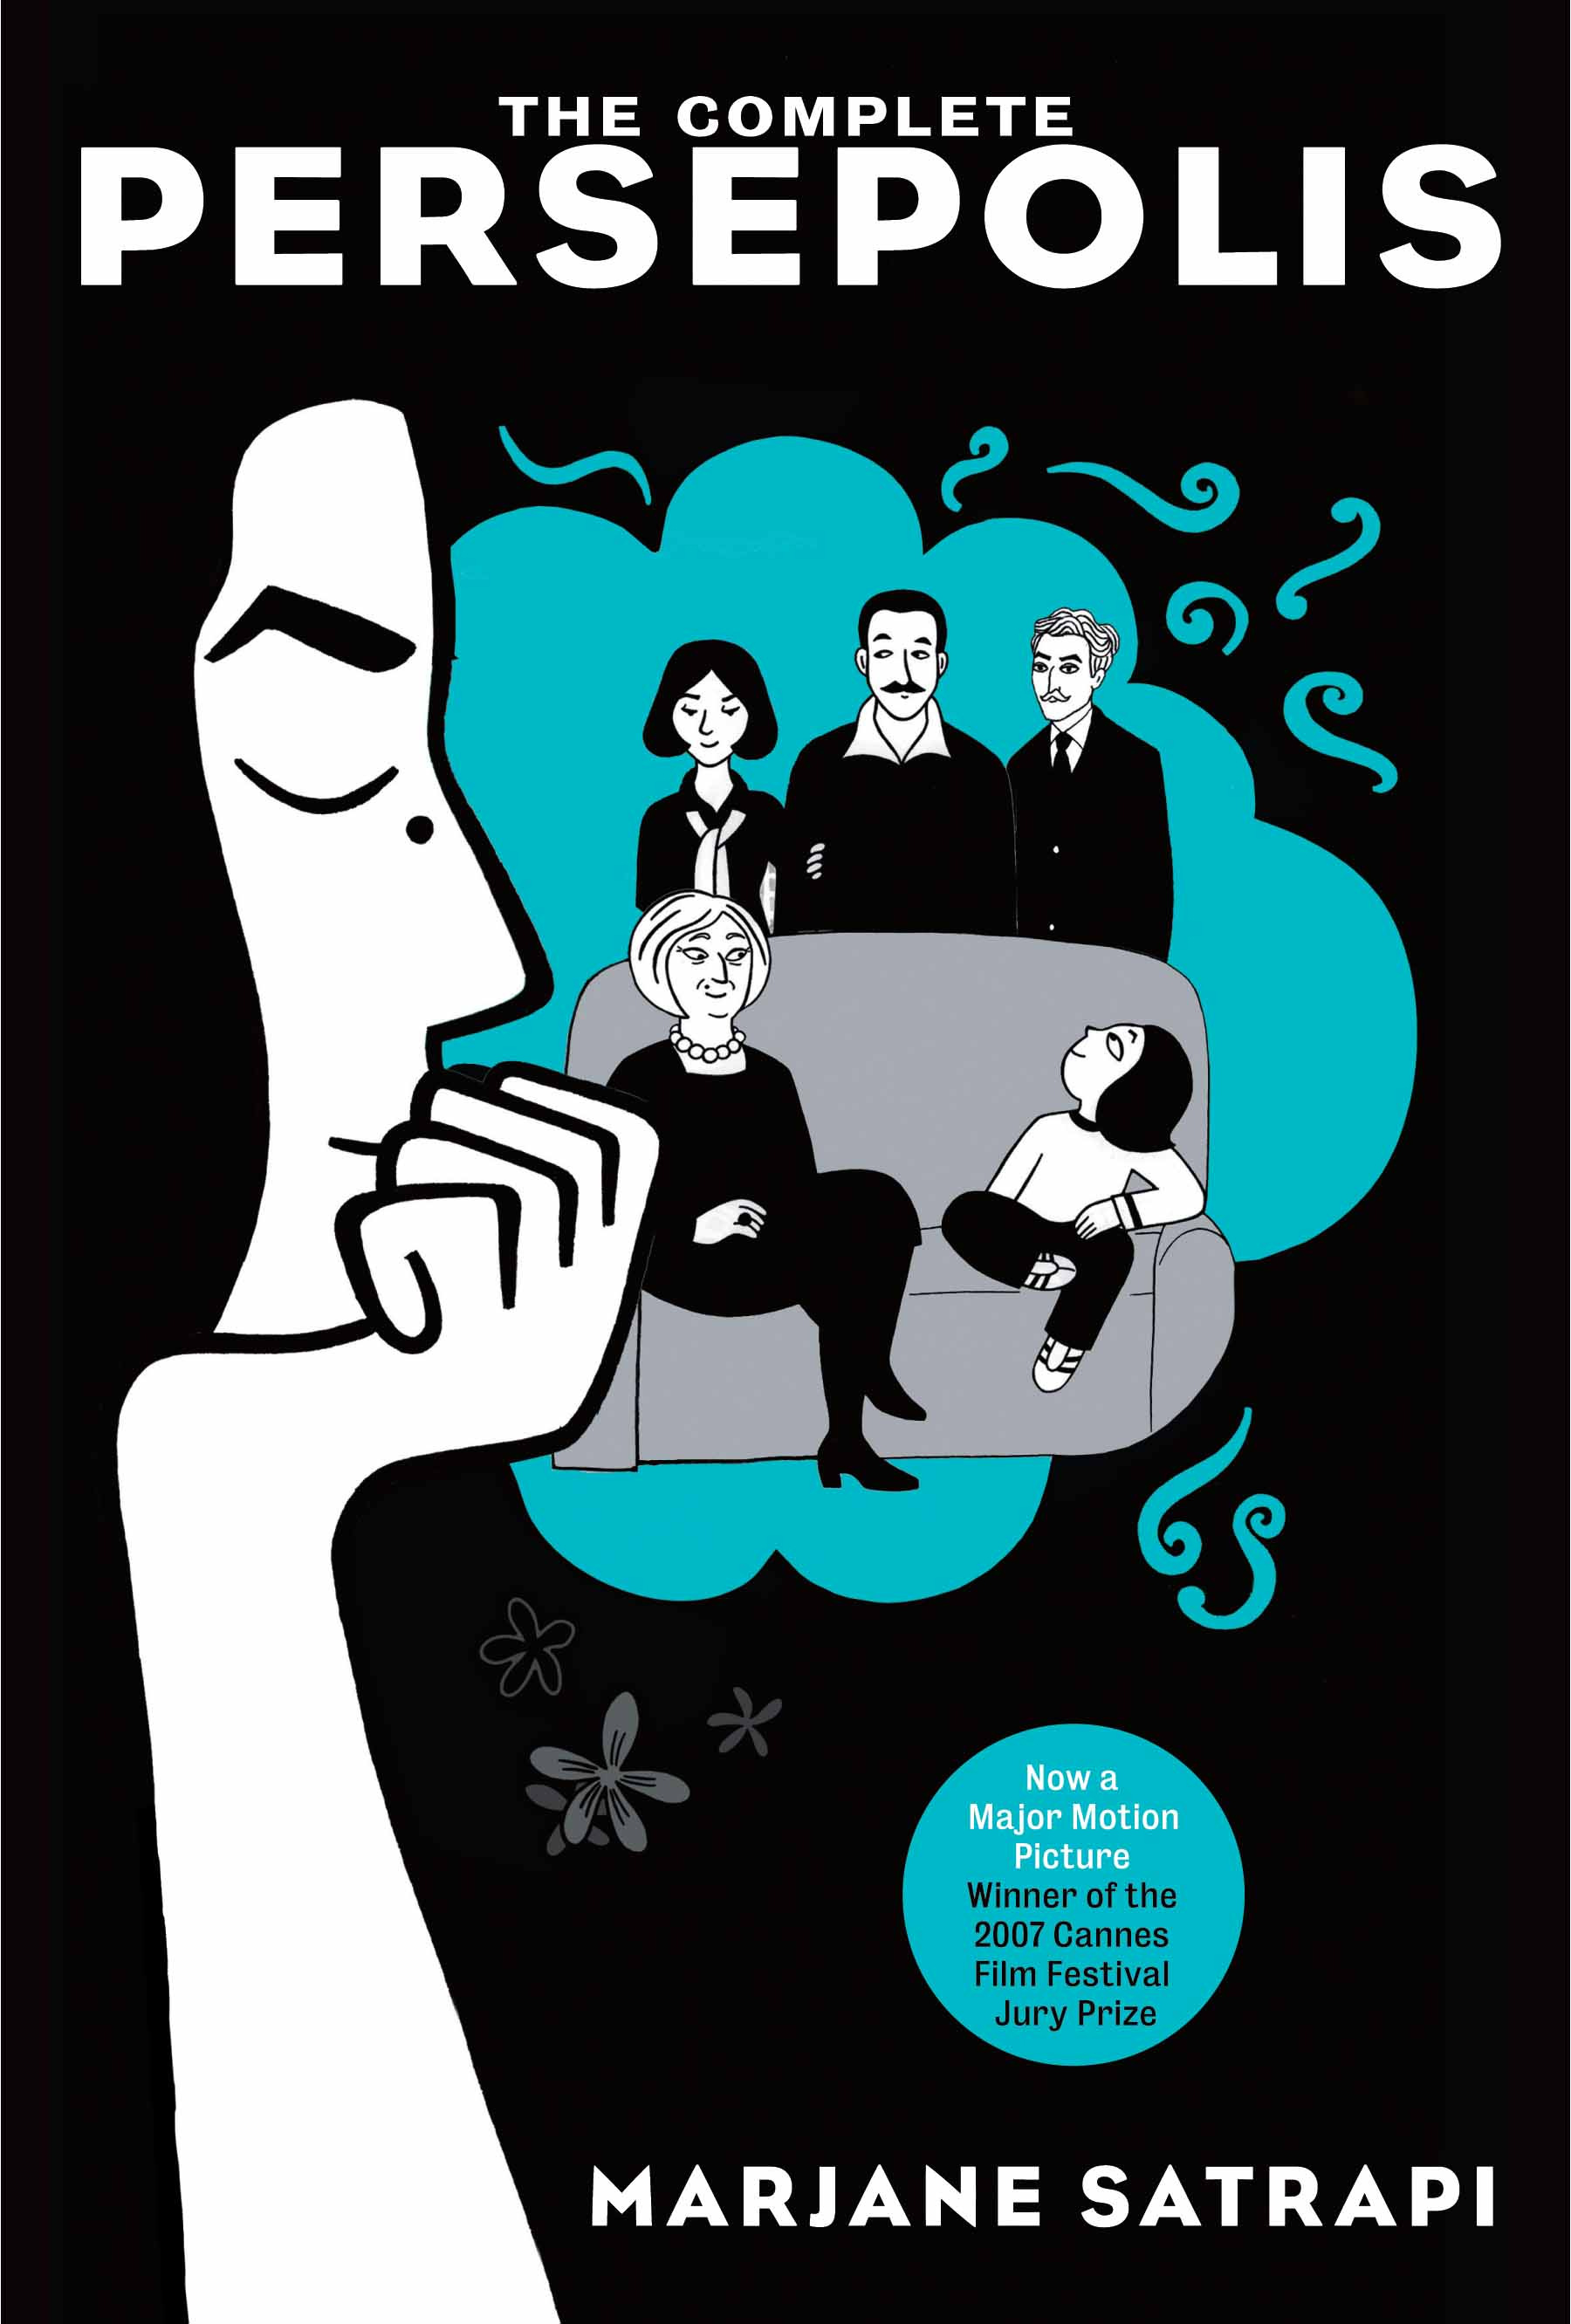 The Complete Persepolis The Story Of A Childhood By Marjane Satrapi